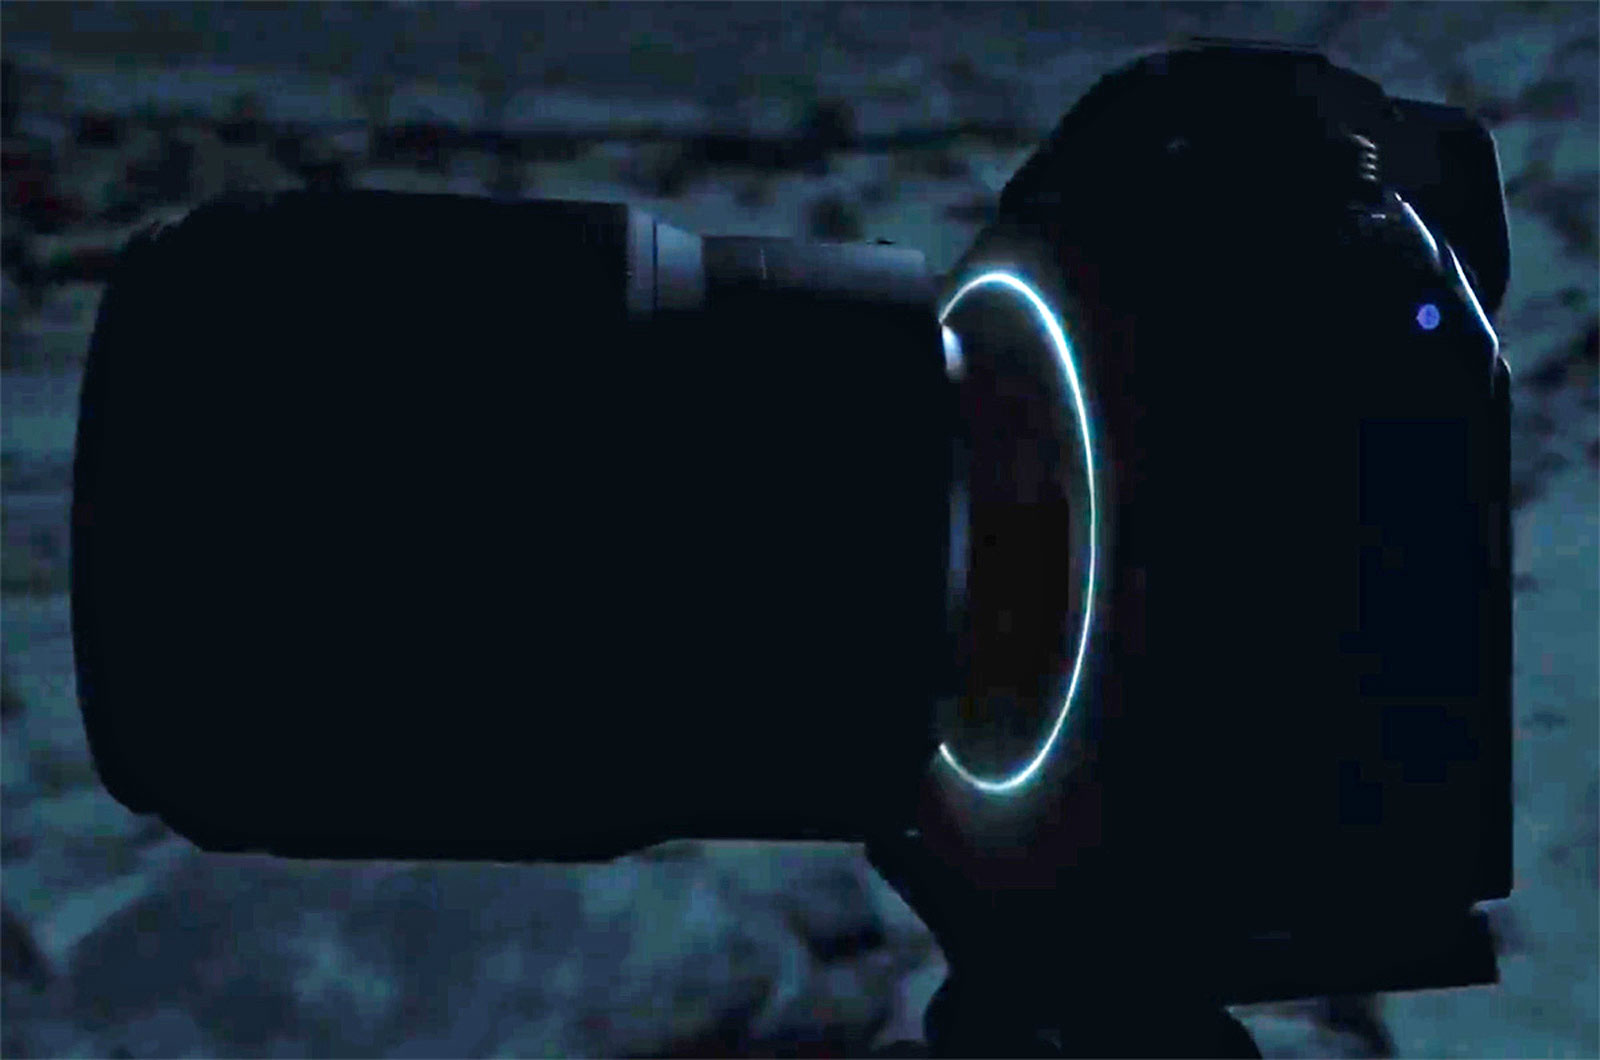 Nikon teases its first full-frame mirrorless cameras